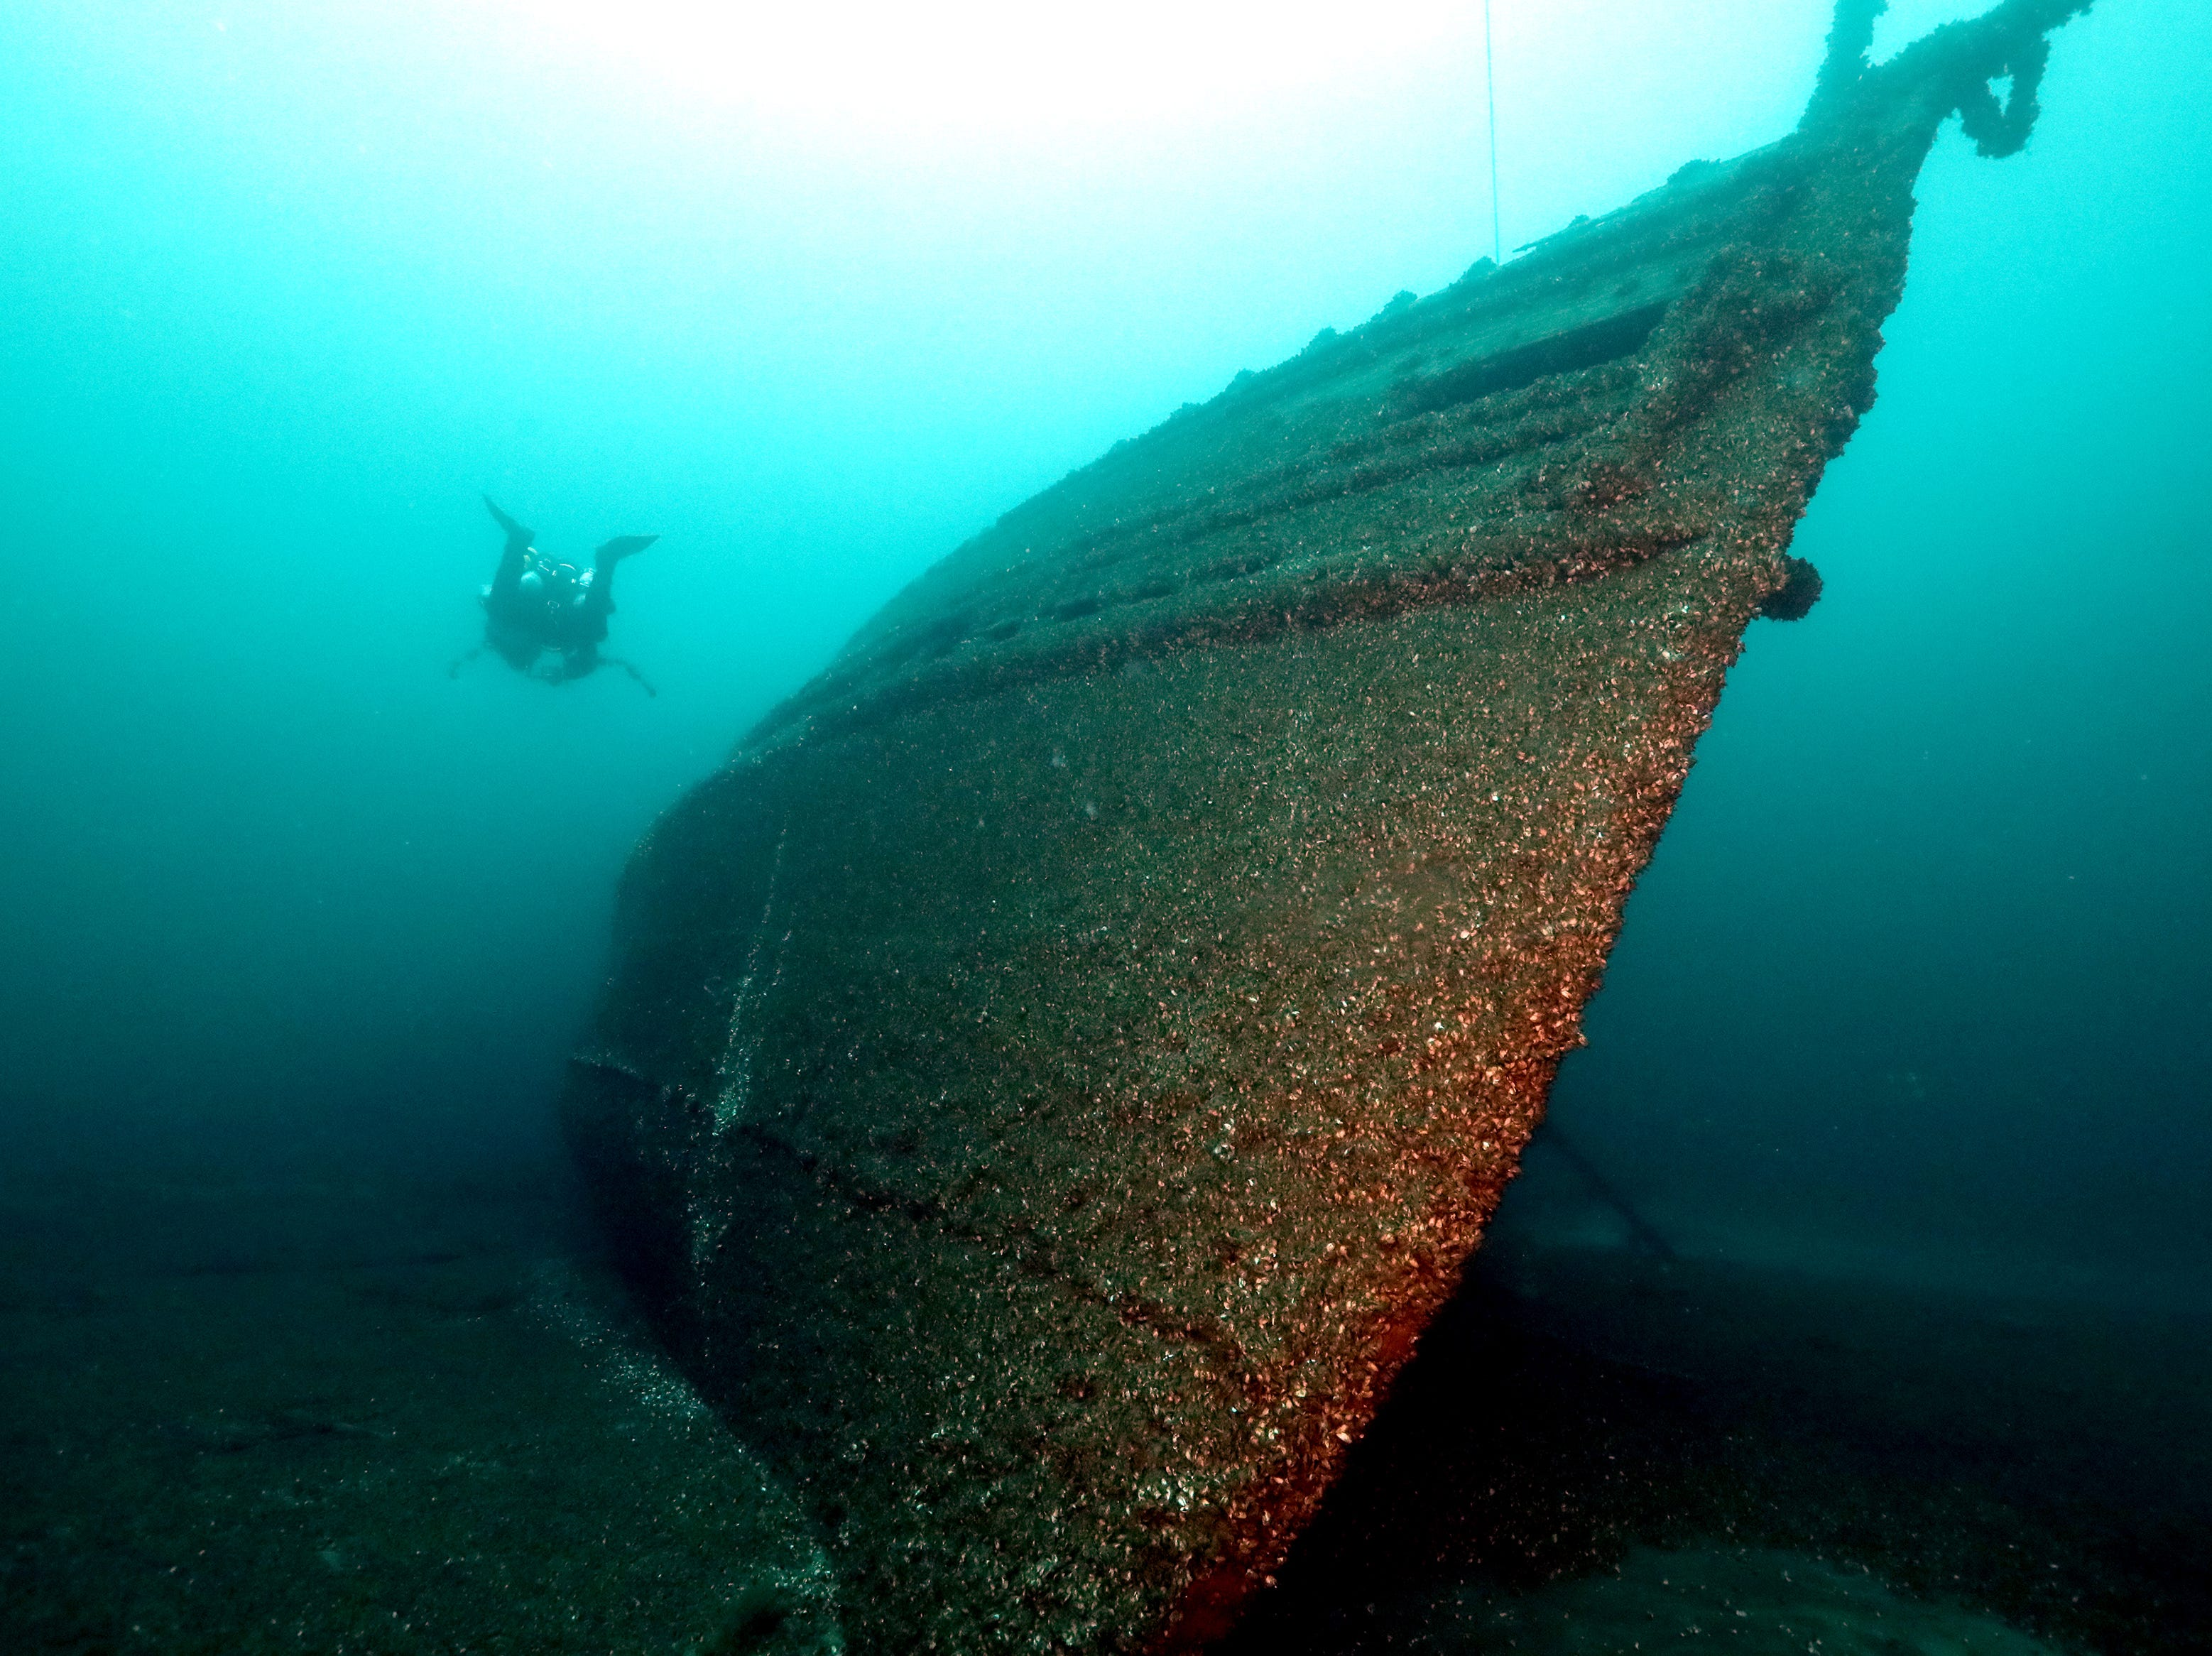 A diver glides past the bow of the J. H. Jones. The wreck sits in deep water with a heavy tilt to port.